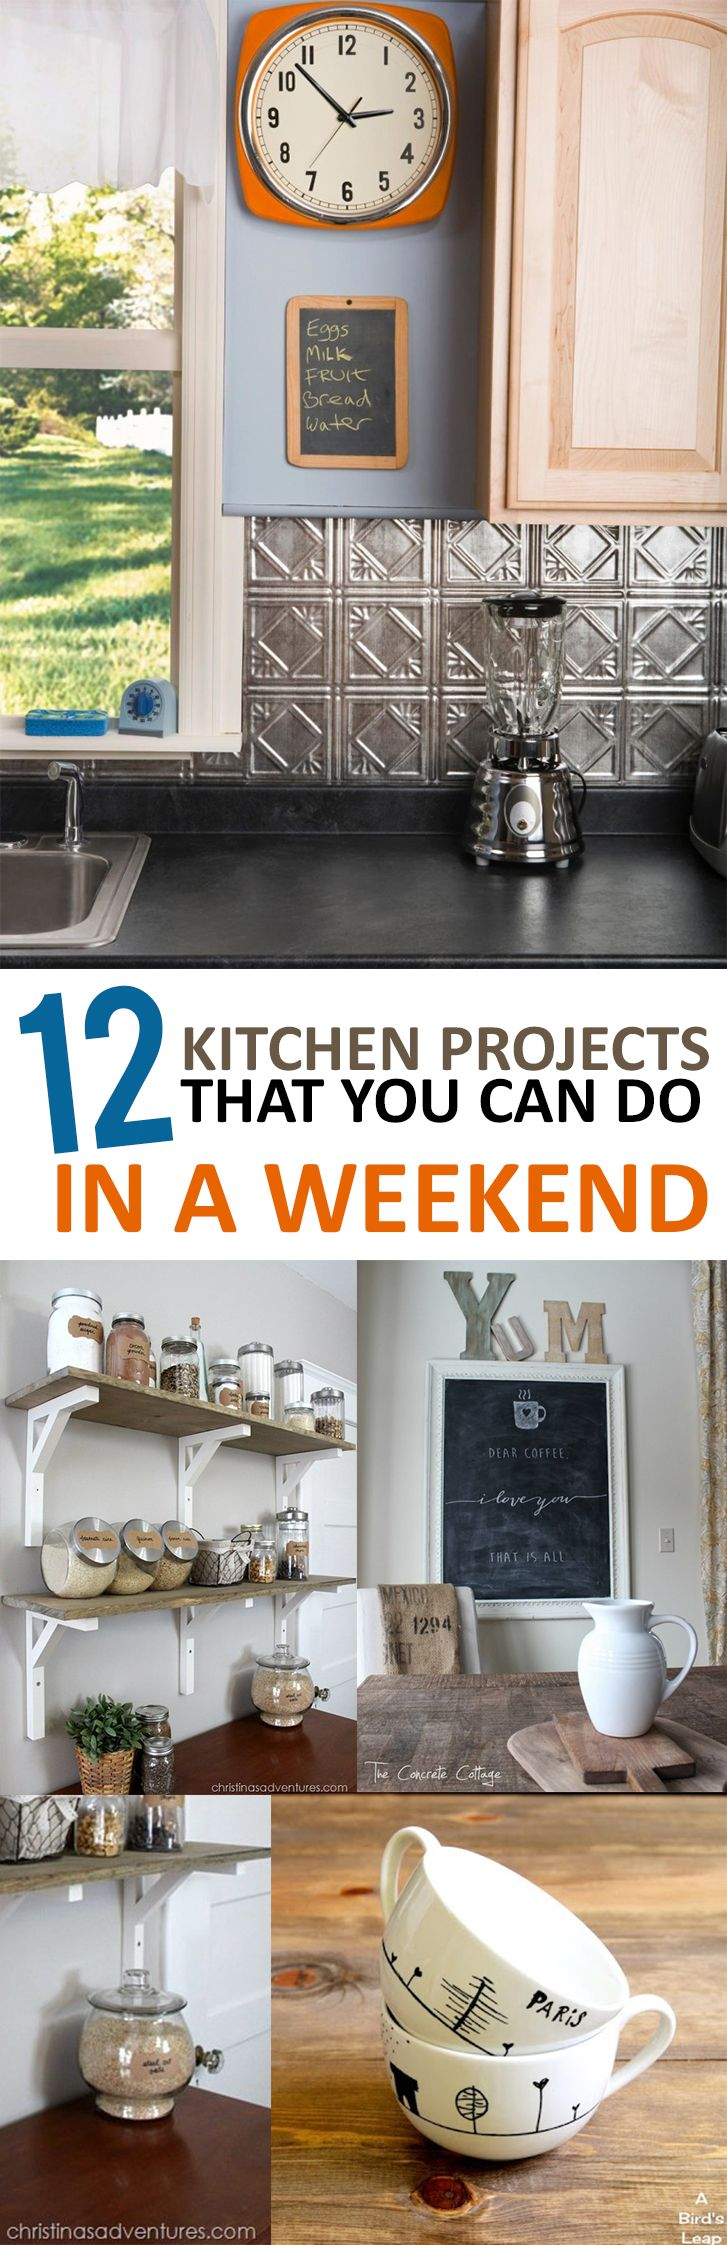 best kitchen images on pinterest kitchens great ideas and